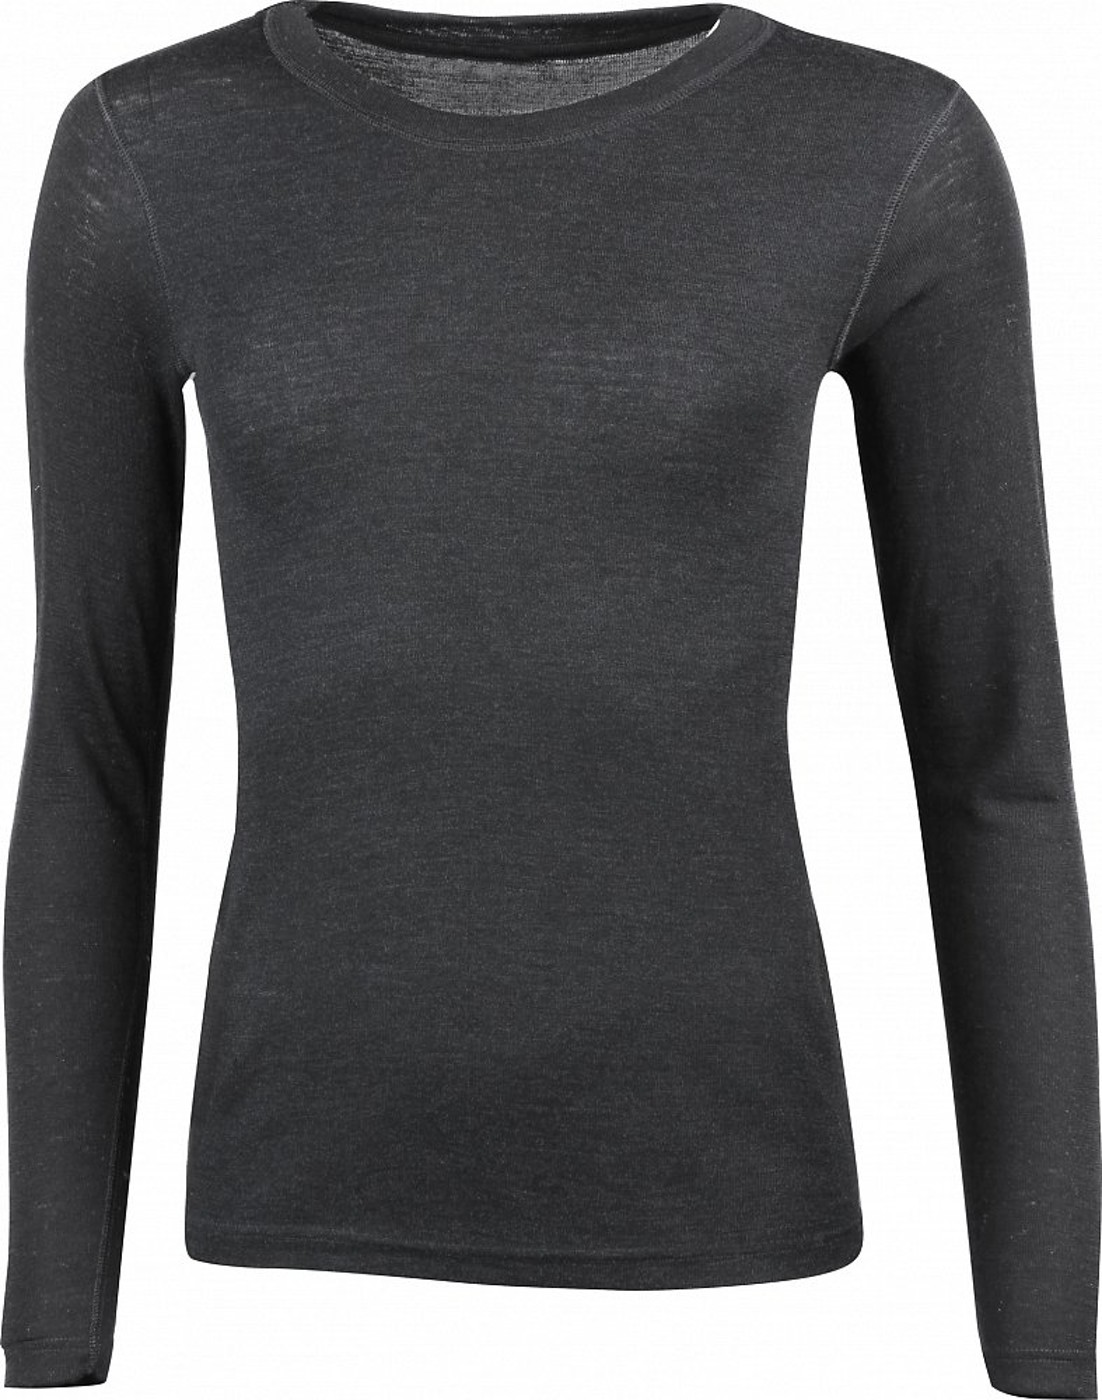 HIGH COLORADO ELBRUS-L LONGSLEEVE - Damen